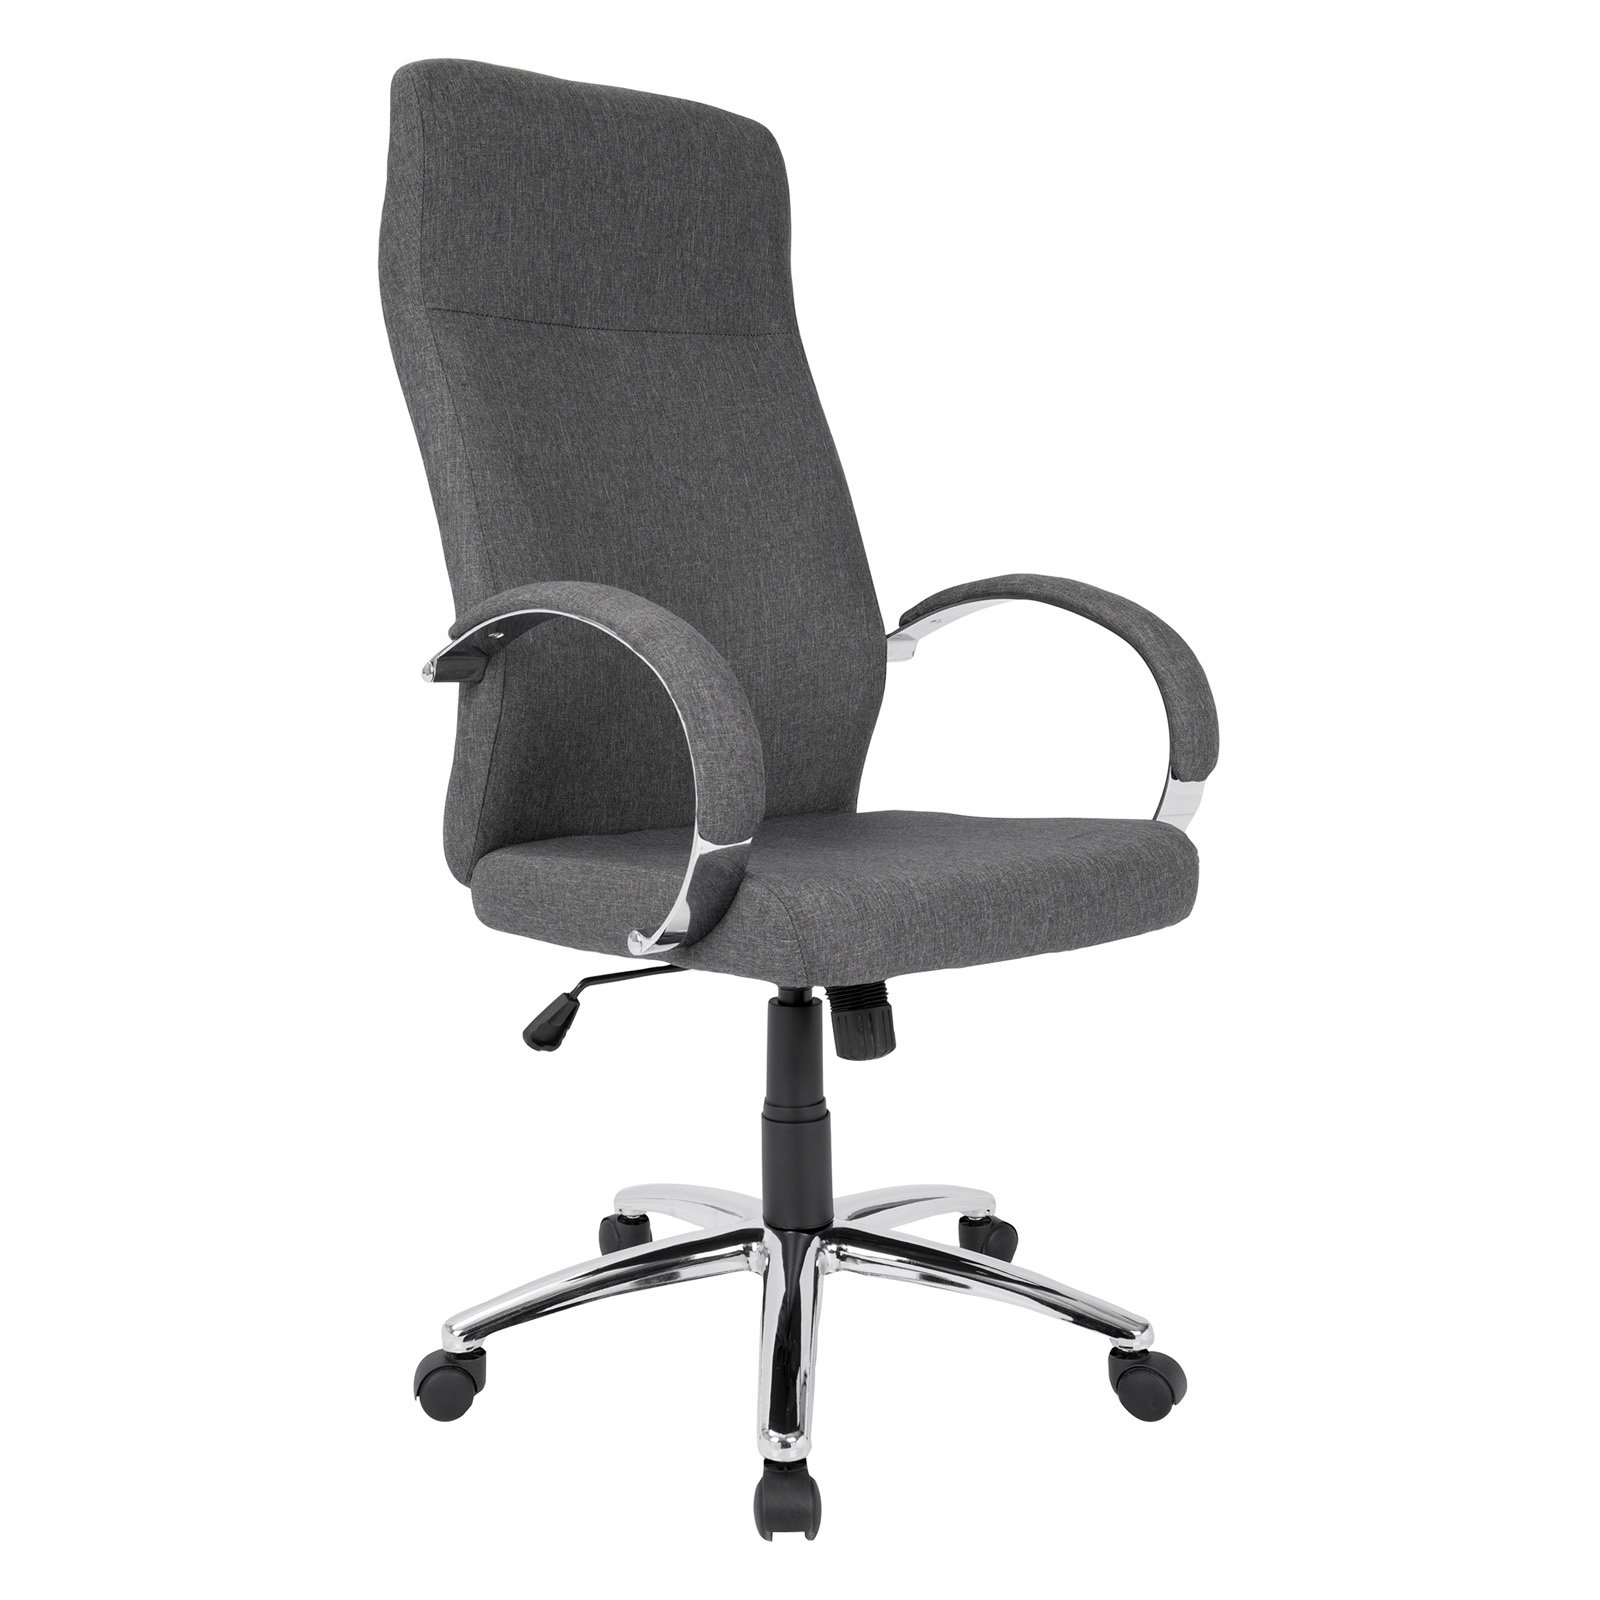 Lumisource Ambassador Office Task Chair by LumiSource, Inc